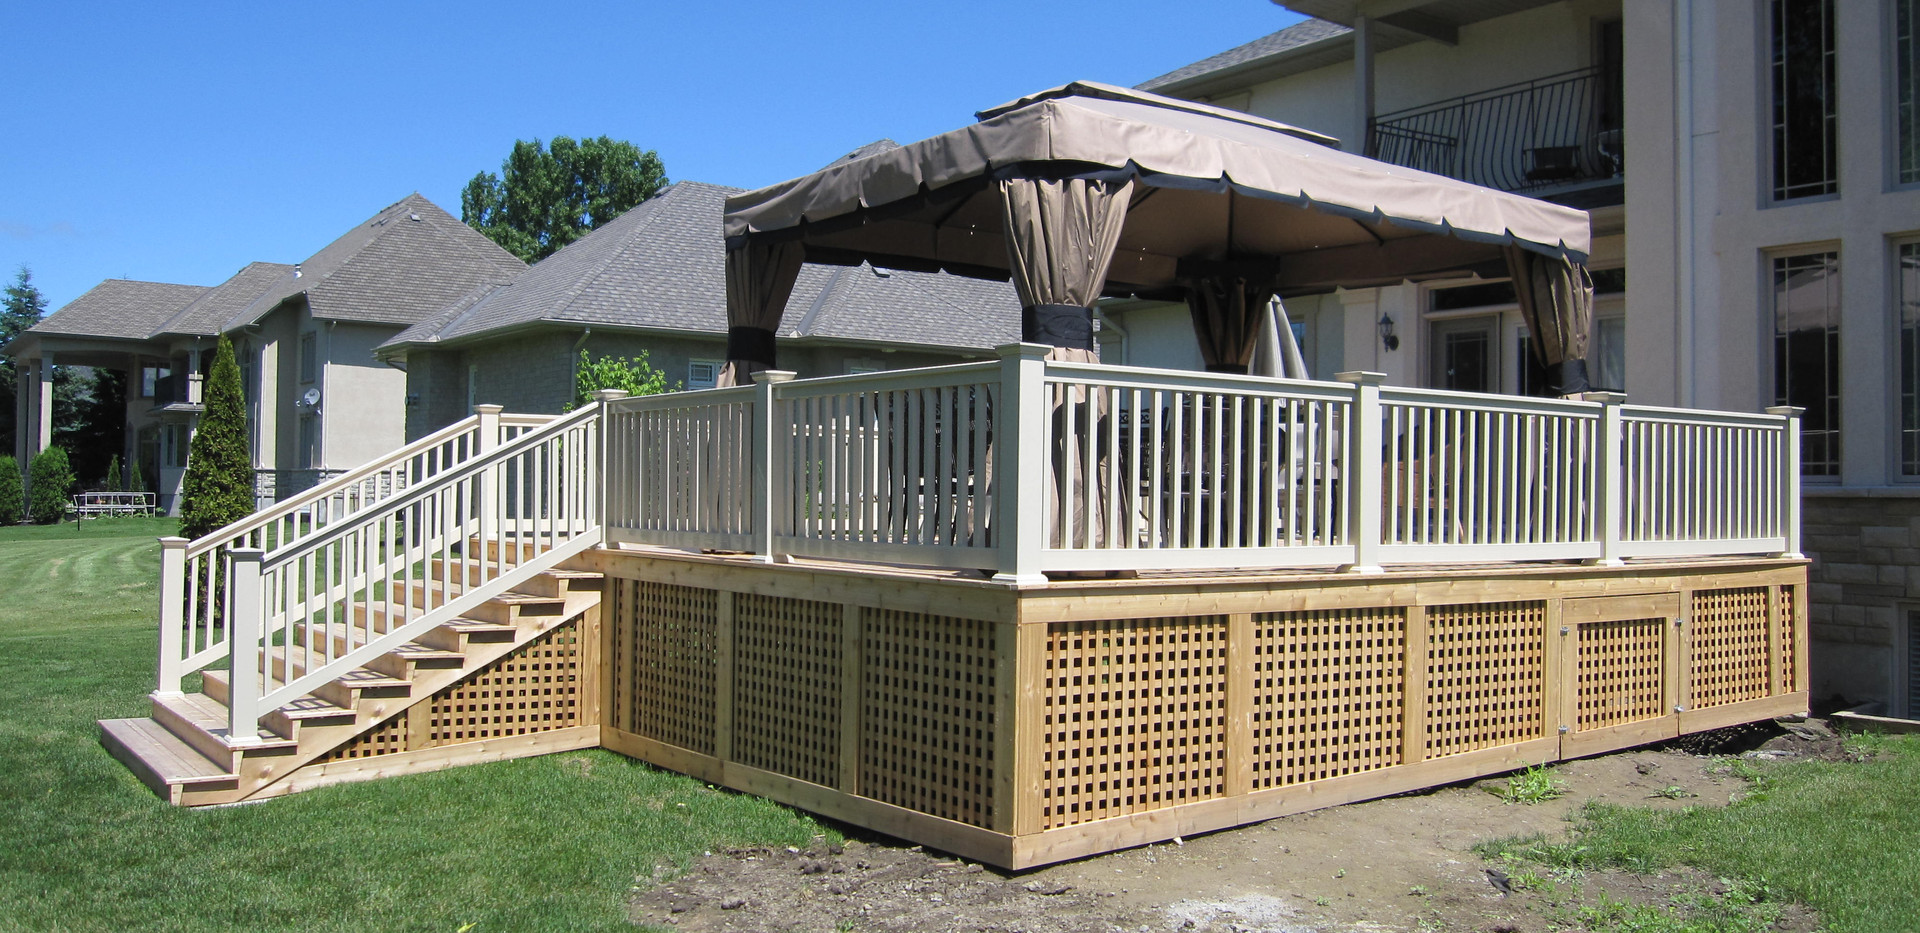 Completion before staining